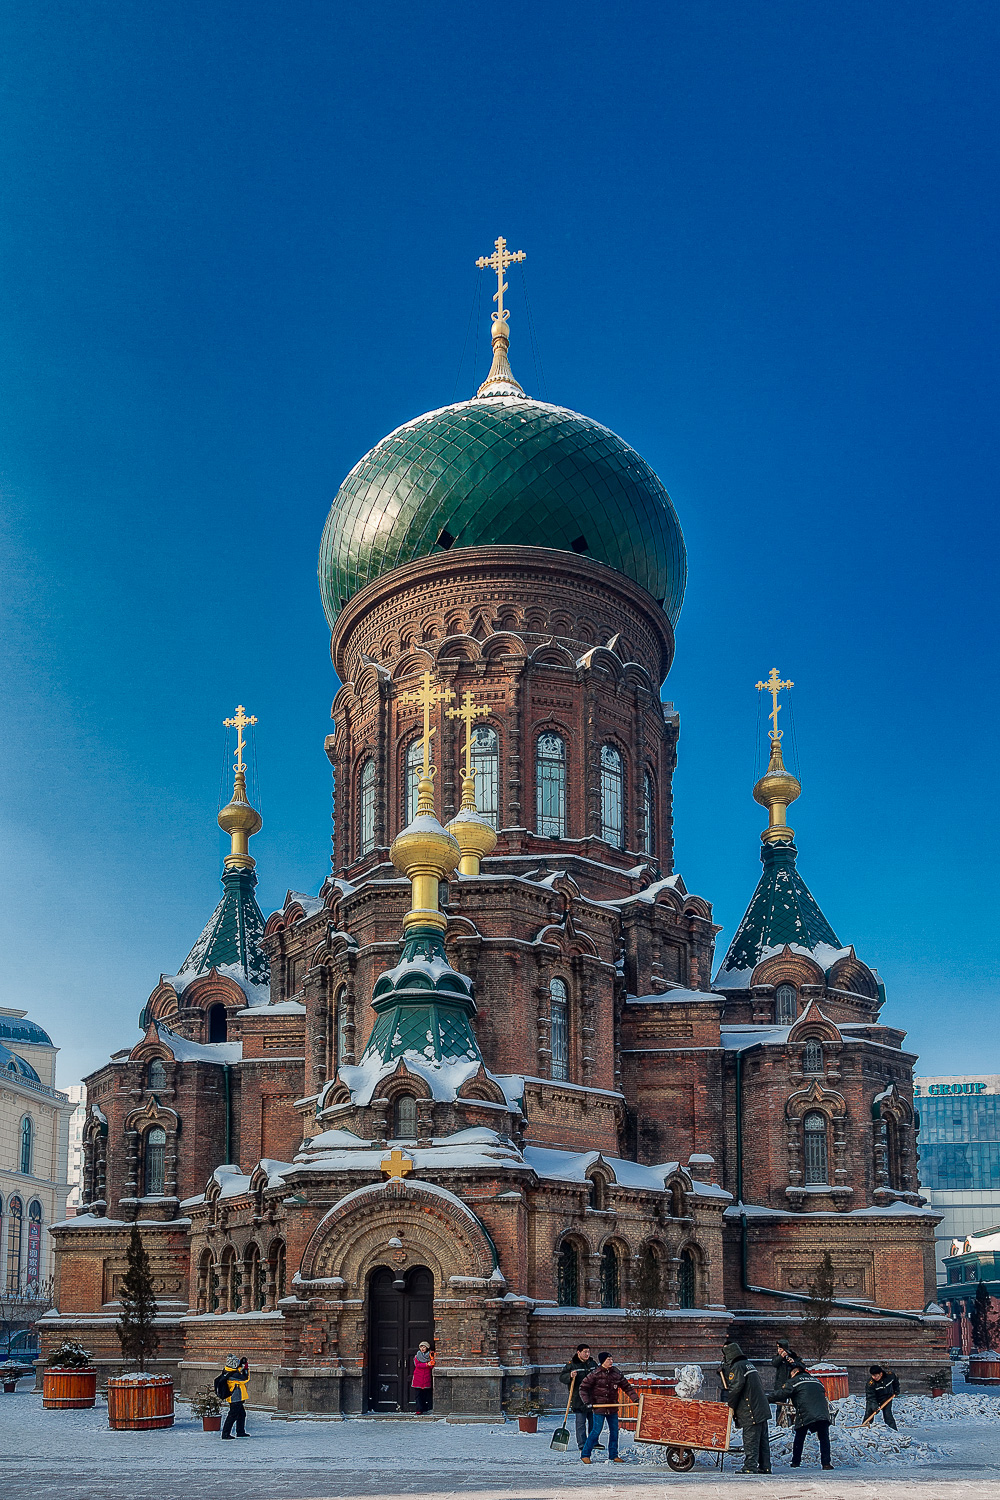 An exterior view of  St. Sophia Cathedral  in  Harbin, China .